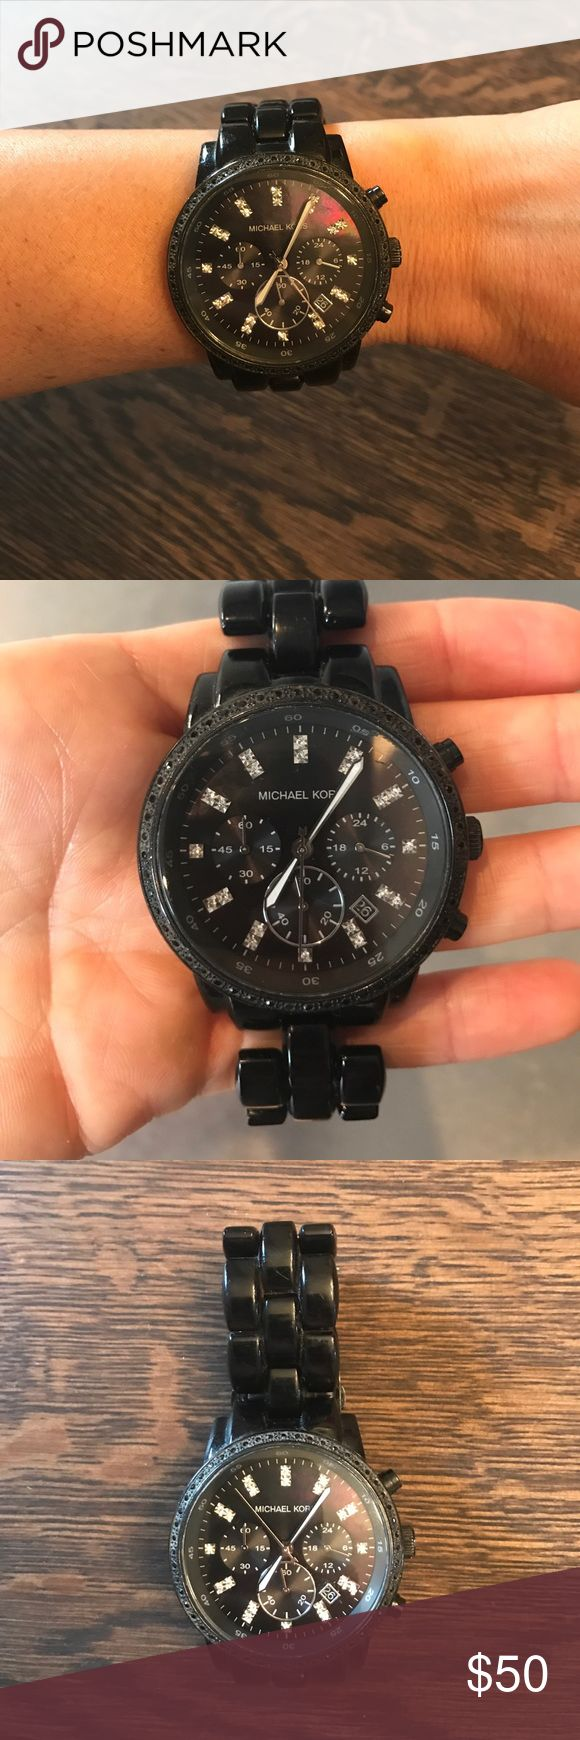 Black Michael Kors Watch This watch is in great condition! has a brand new battery too. KORS Michael Kors Accessories Watches